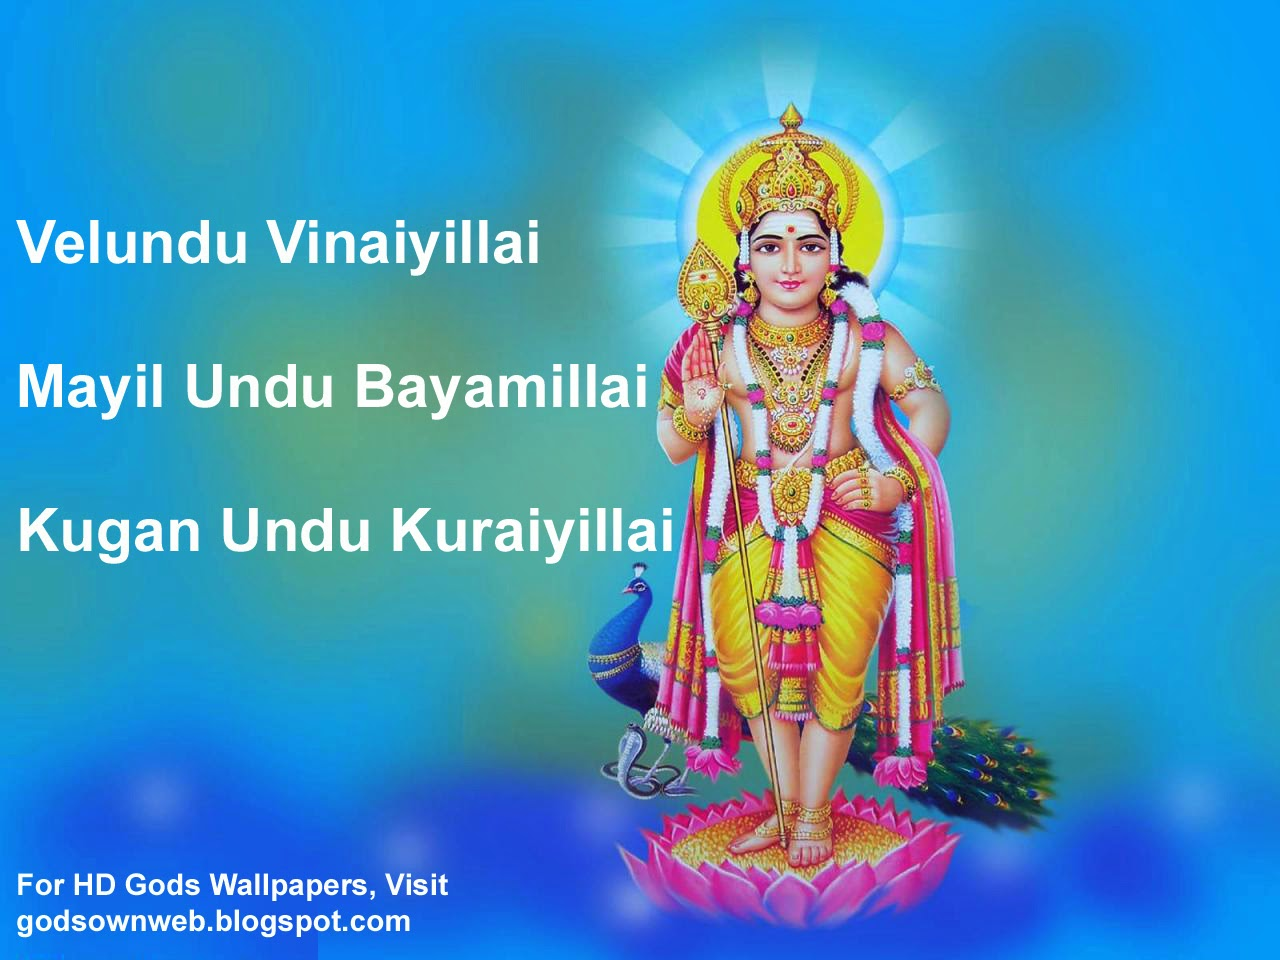 Lord murugan wallpapers lord karthickeyan wallpapers god the powerful god six face lord murugan to download scroll down to download the hd wallpapers of god murugan thecheapjerseys Images